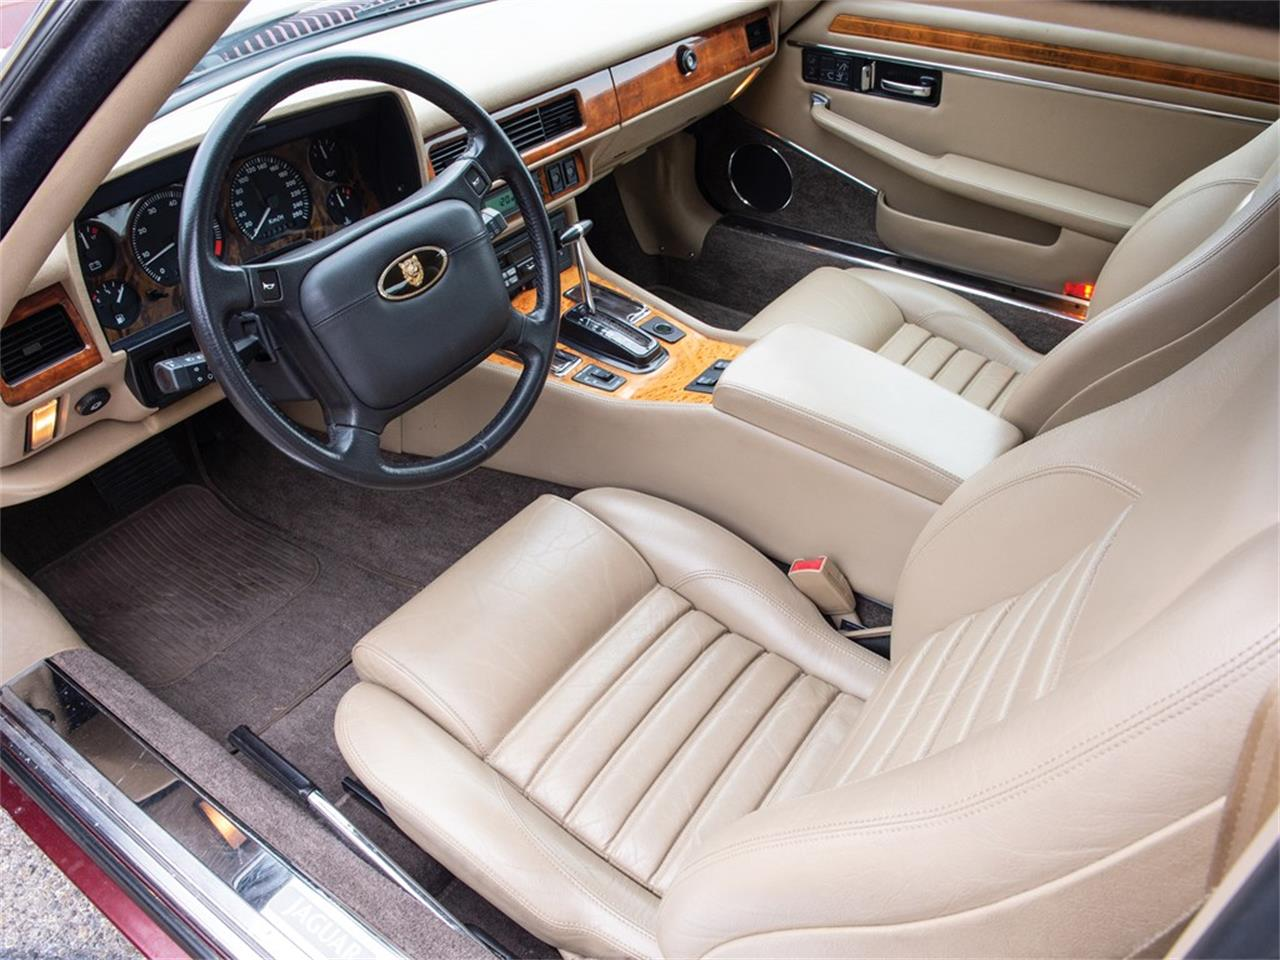 1991 Jaguar XJS for sale in Essen, Other – photo 4